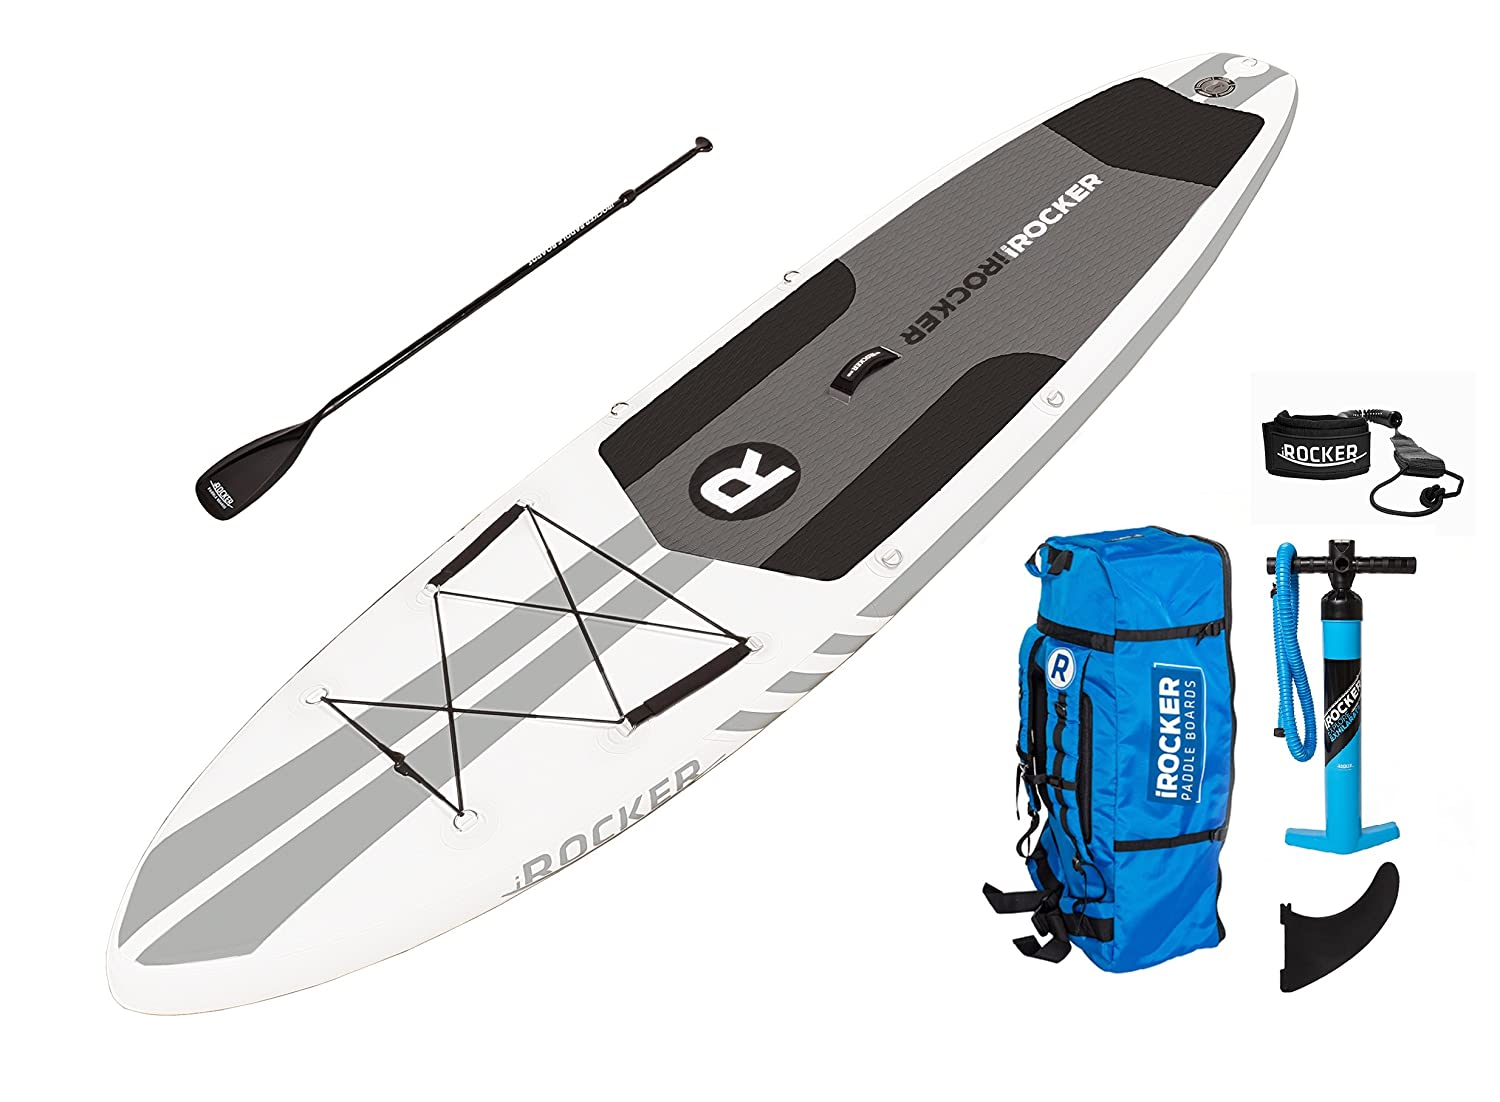 Paquete SUP de tabla de surf de remo hinchable iROCKER ALL-AROUND, 11 largo, 32